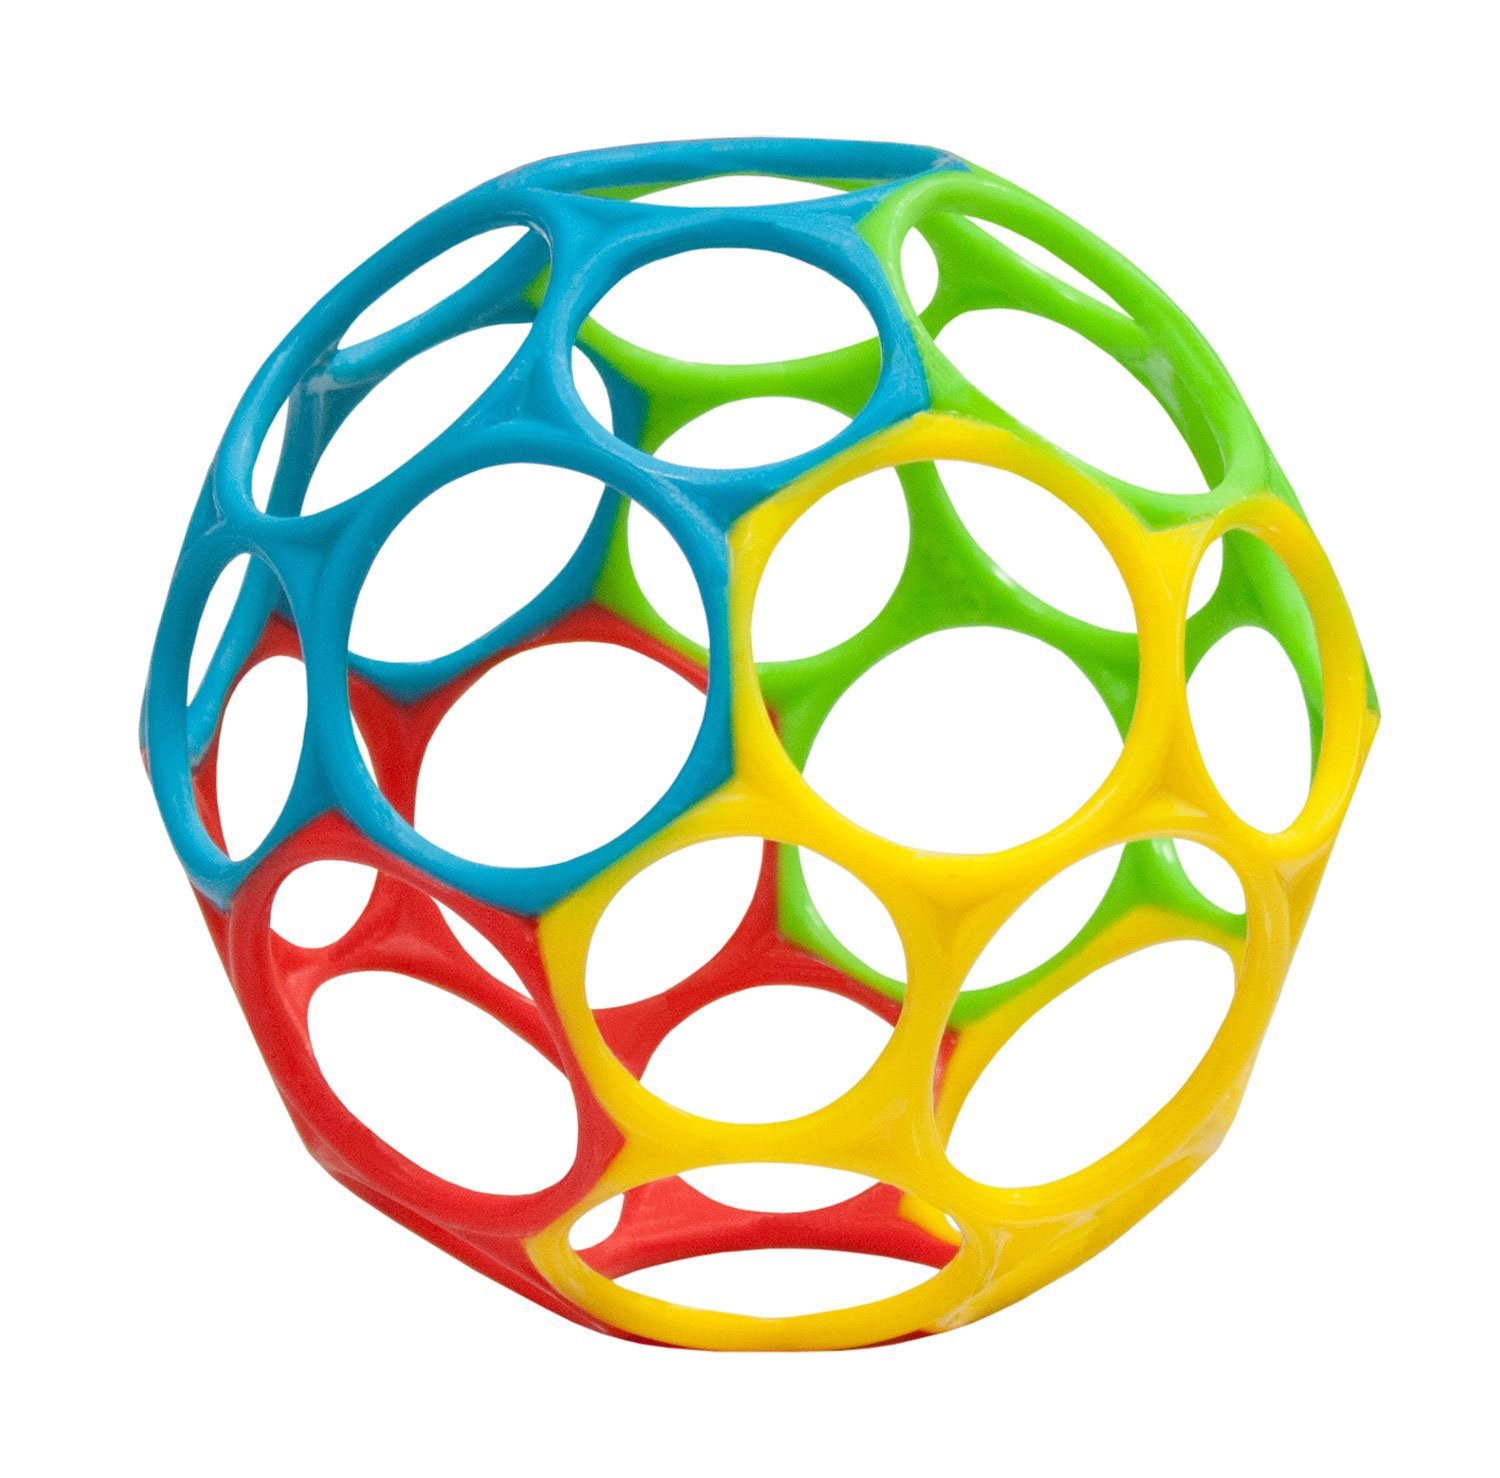 Oball Toy Ball, Multicolored, Assorted